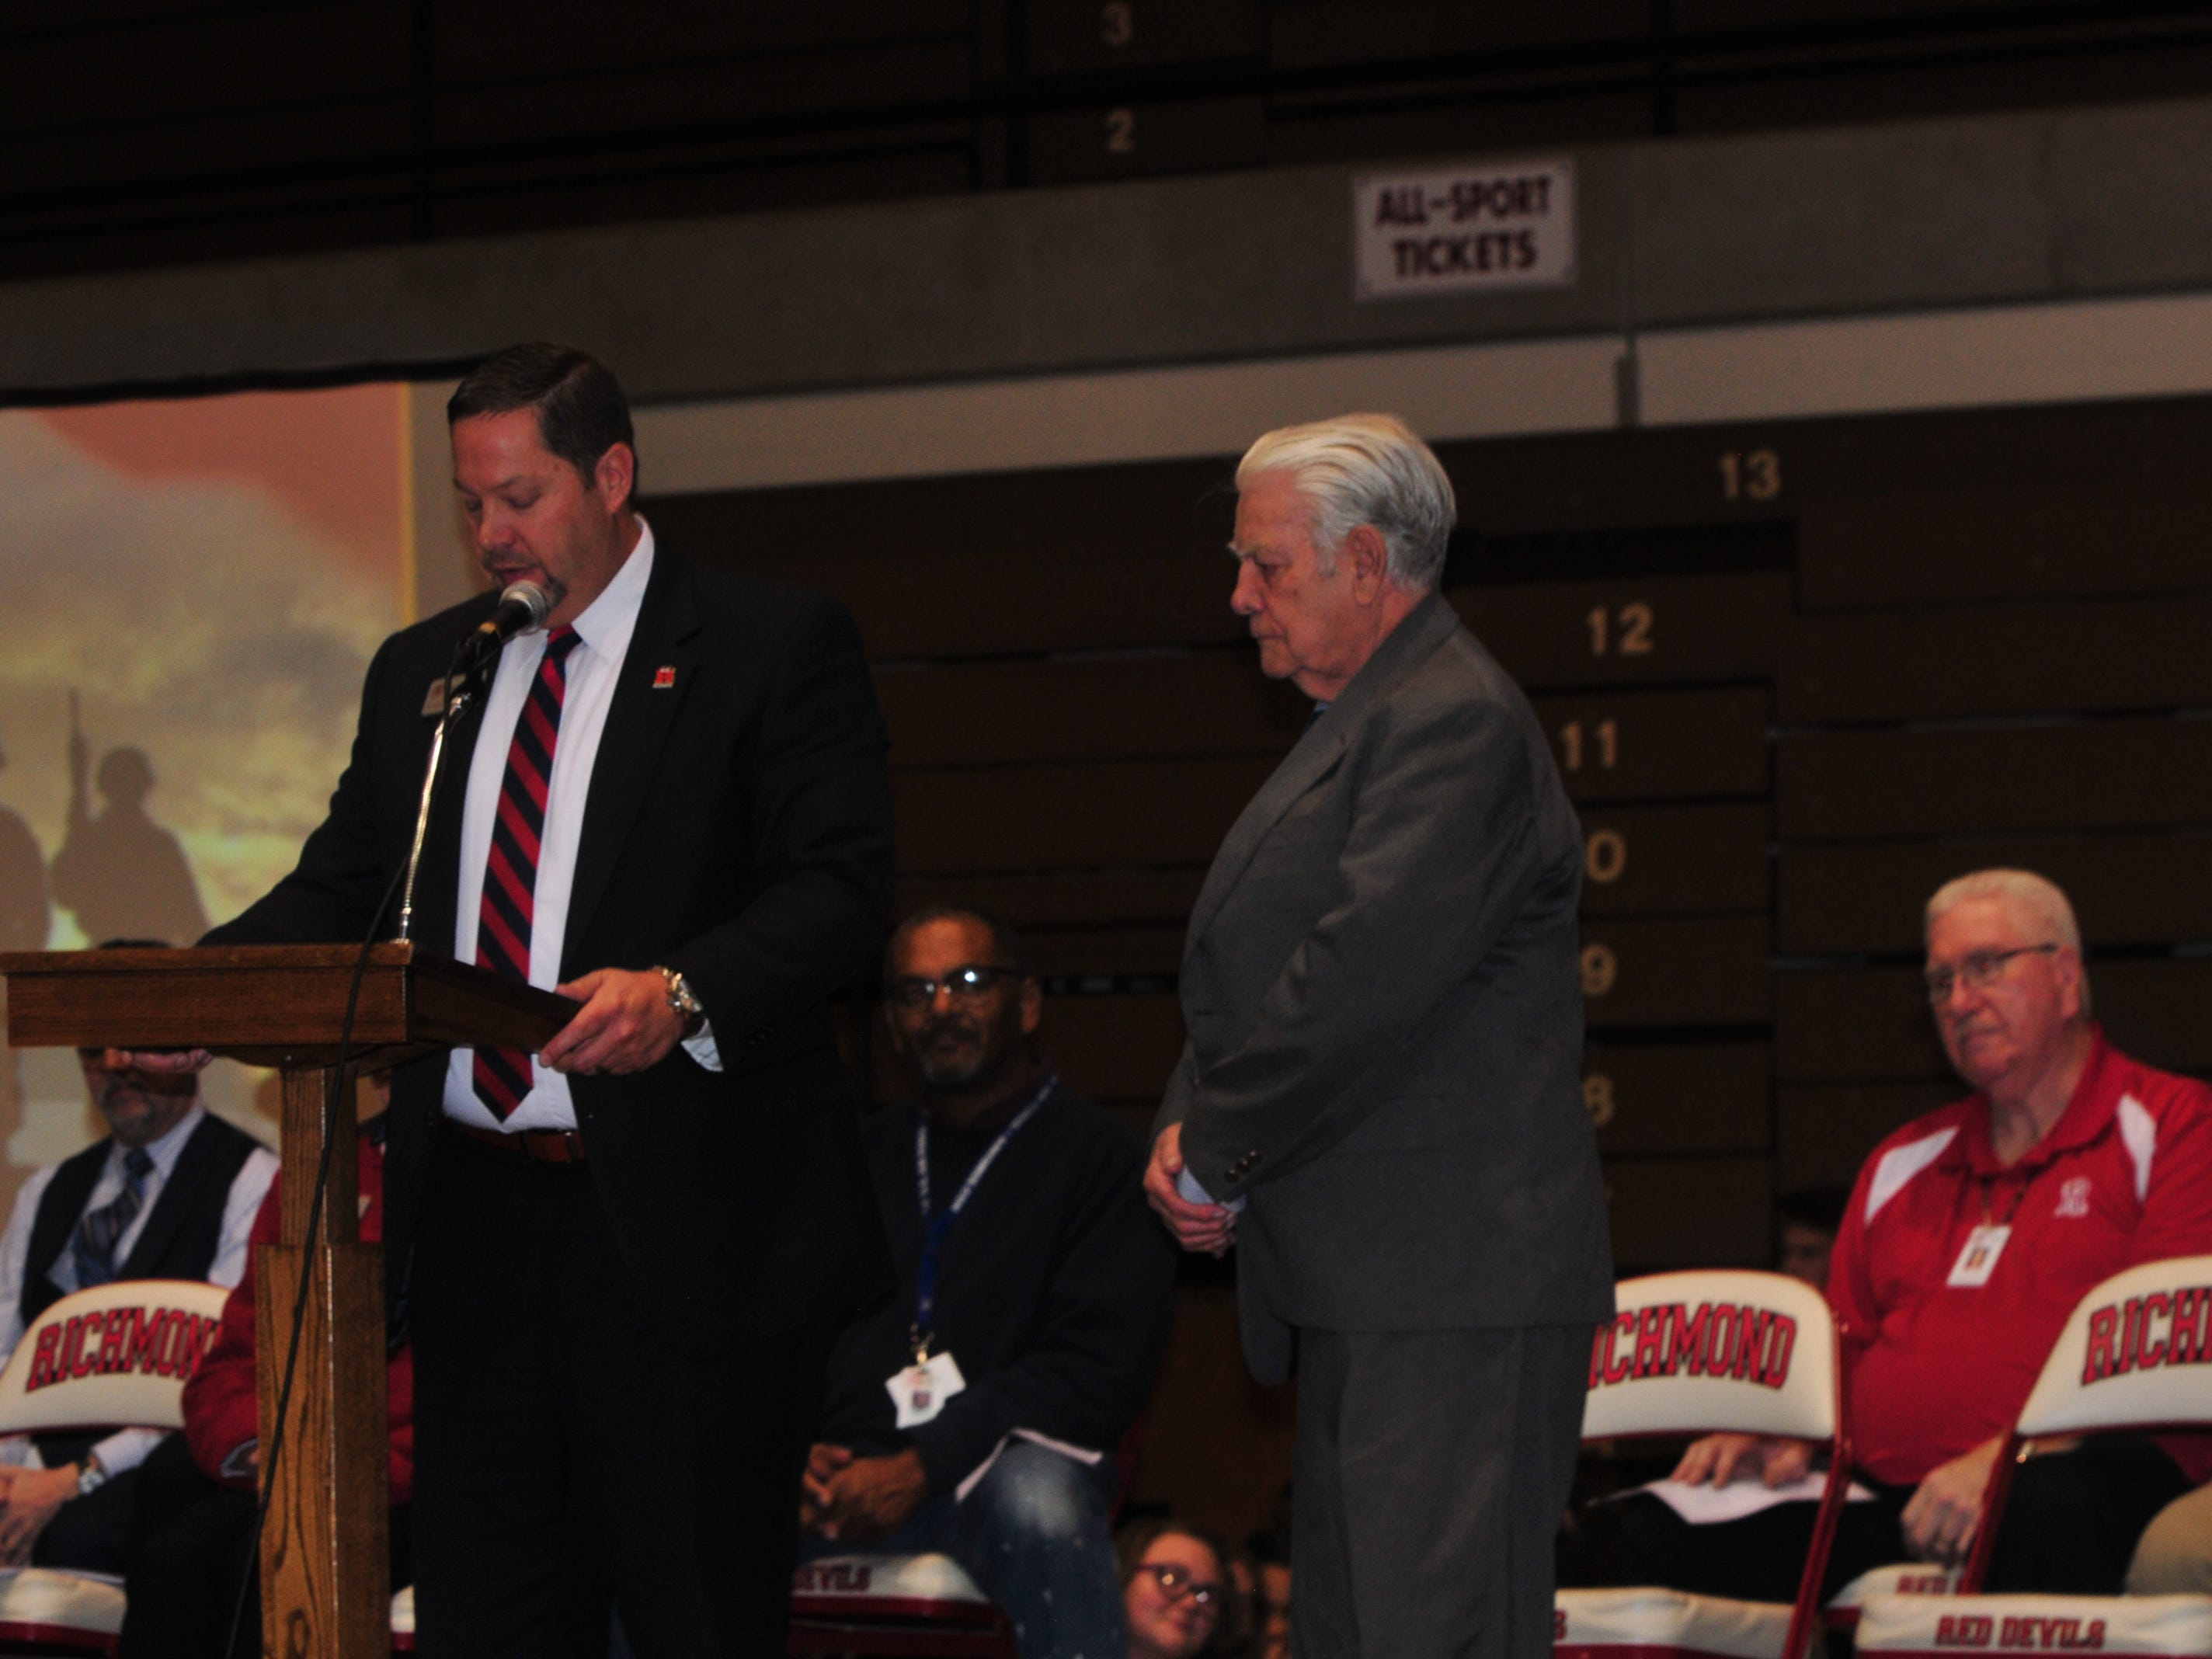 Richmond Community Schools Superintendent Todd Terrill awards a Richmond High School diploma to Bill Grimes, who left RHS to join the Navy.